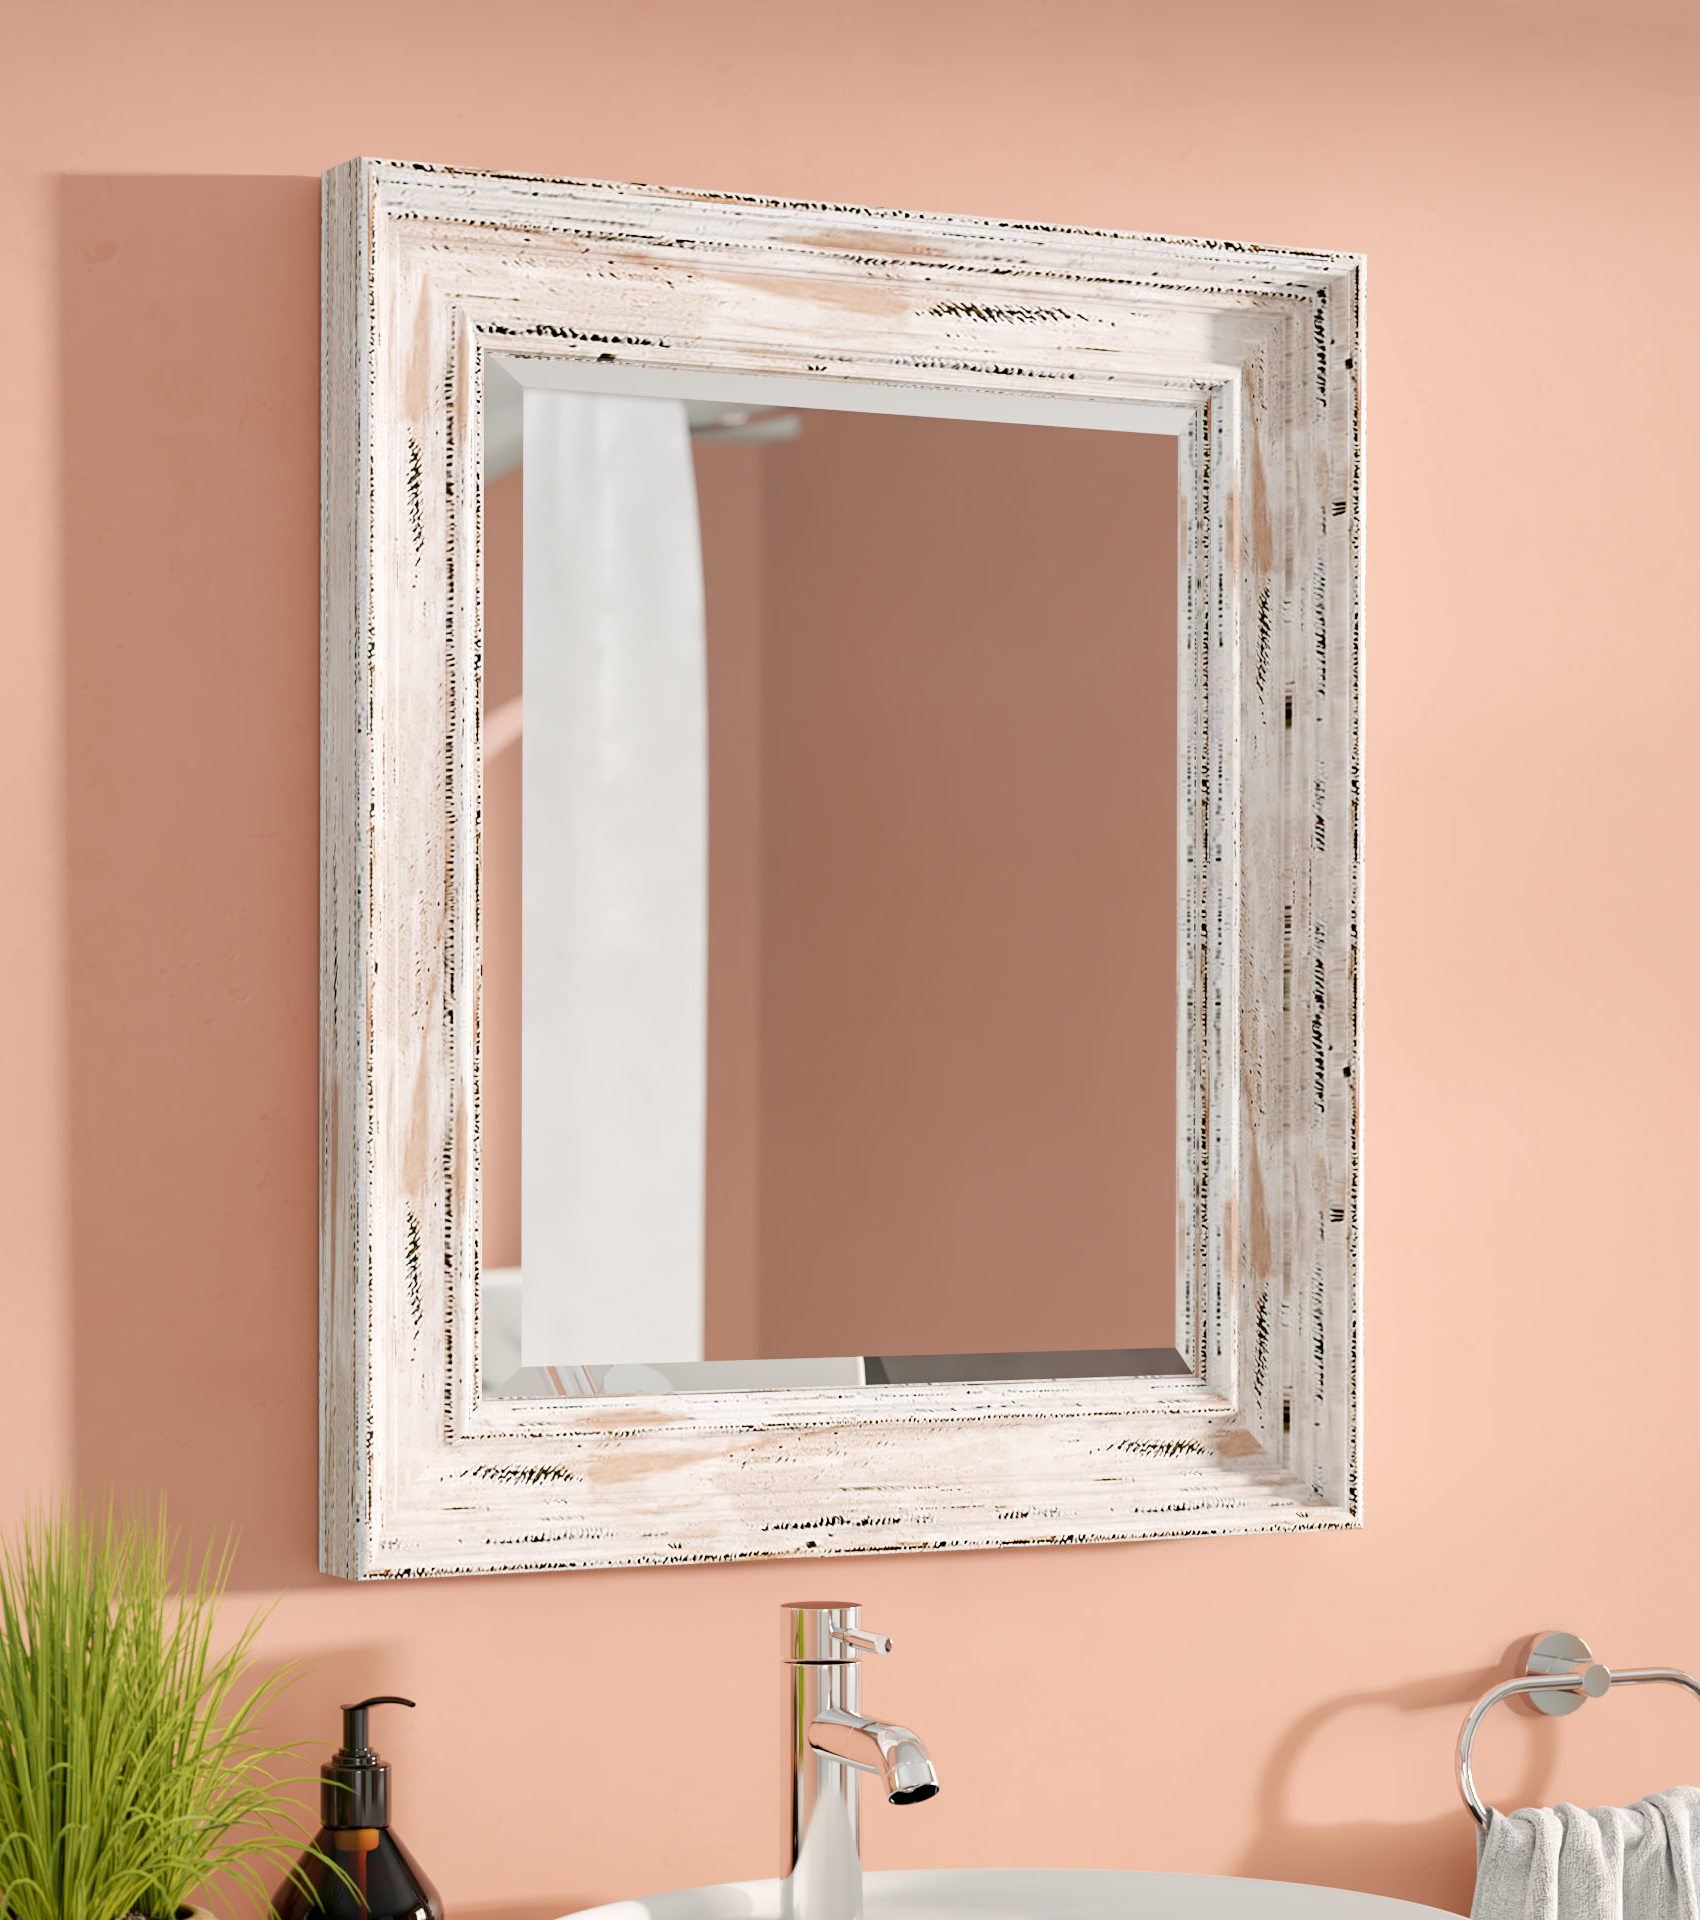 Latest Marion Wall Mirrors Regarding Marion Beveled Distressed Bathroom Wall Mirror (View 9 of 20)